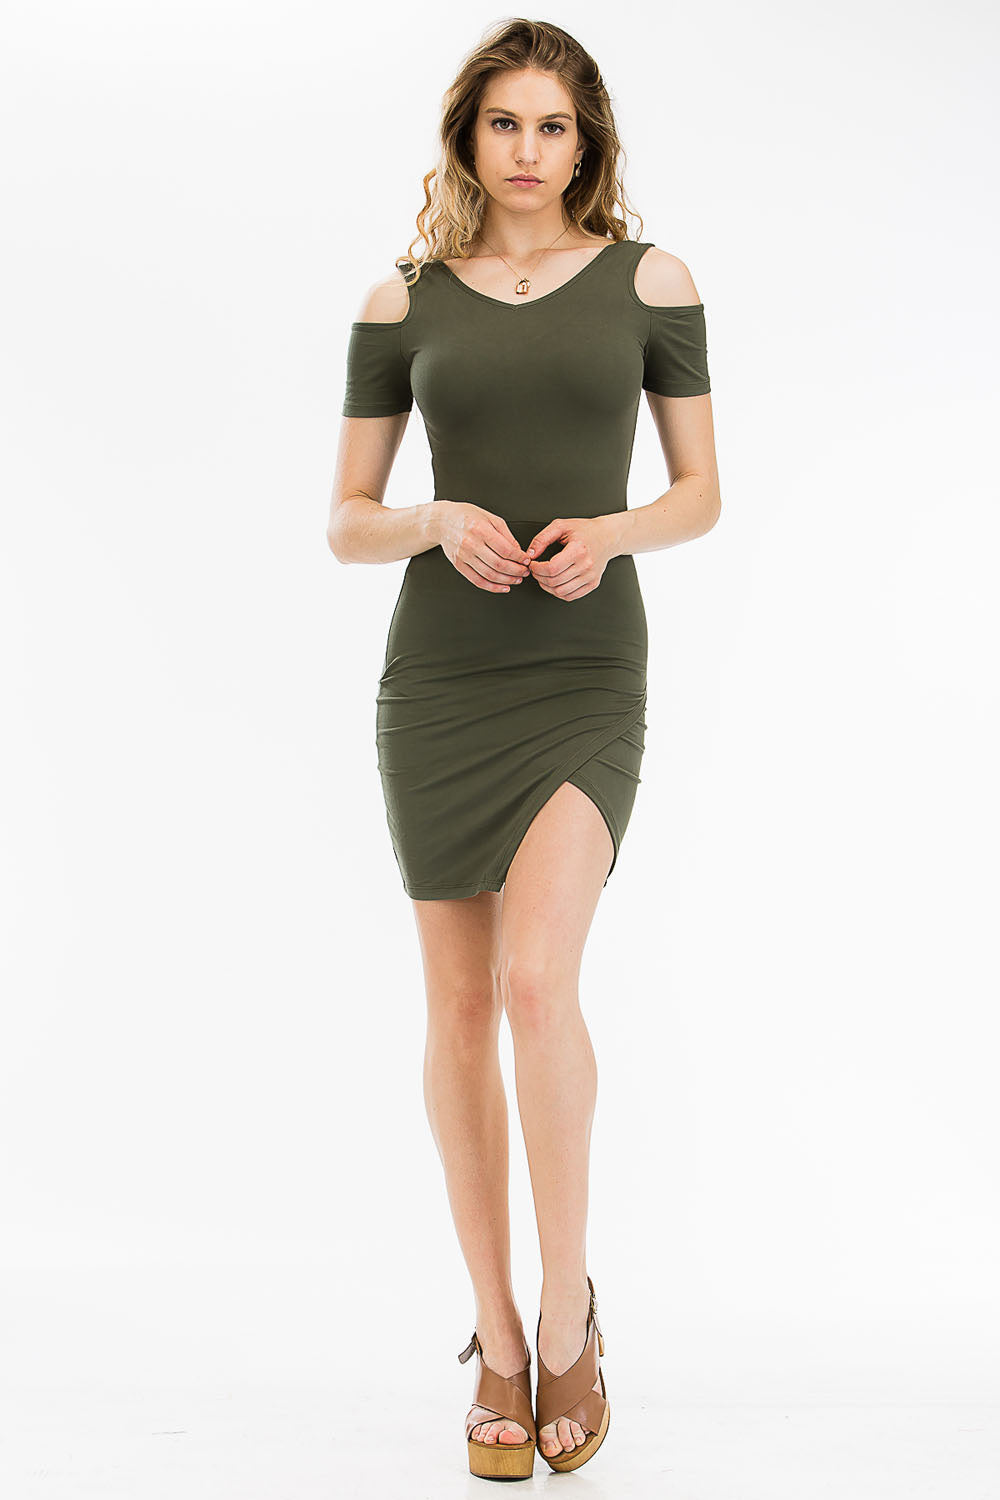 Dress - BD2210 - Capella Apparel